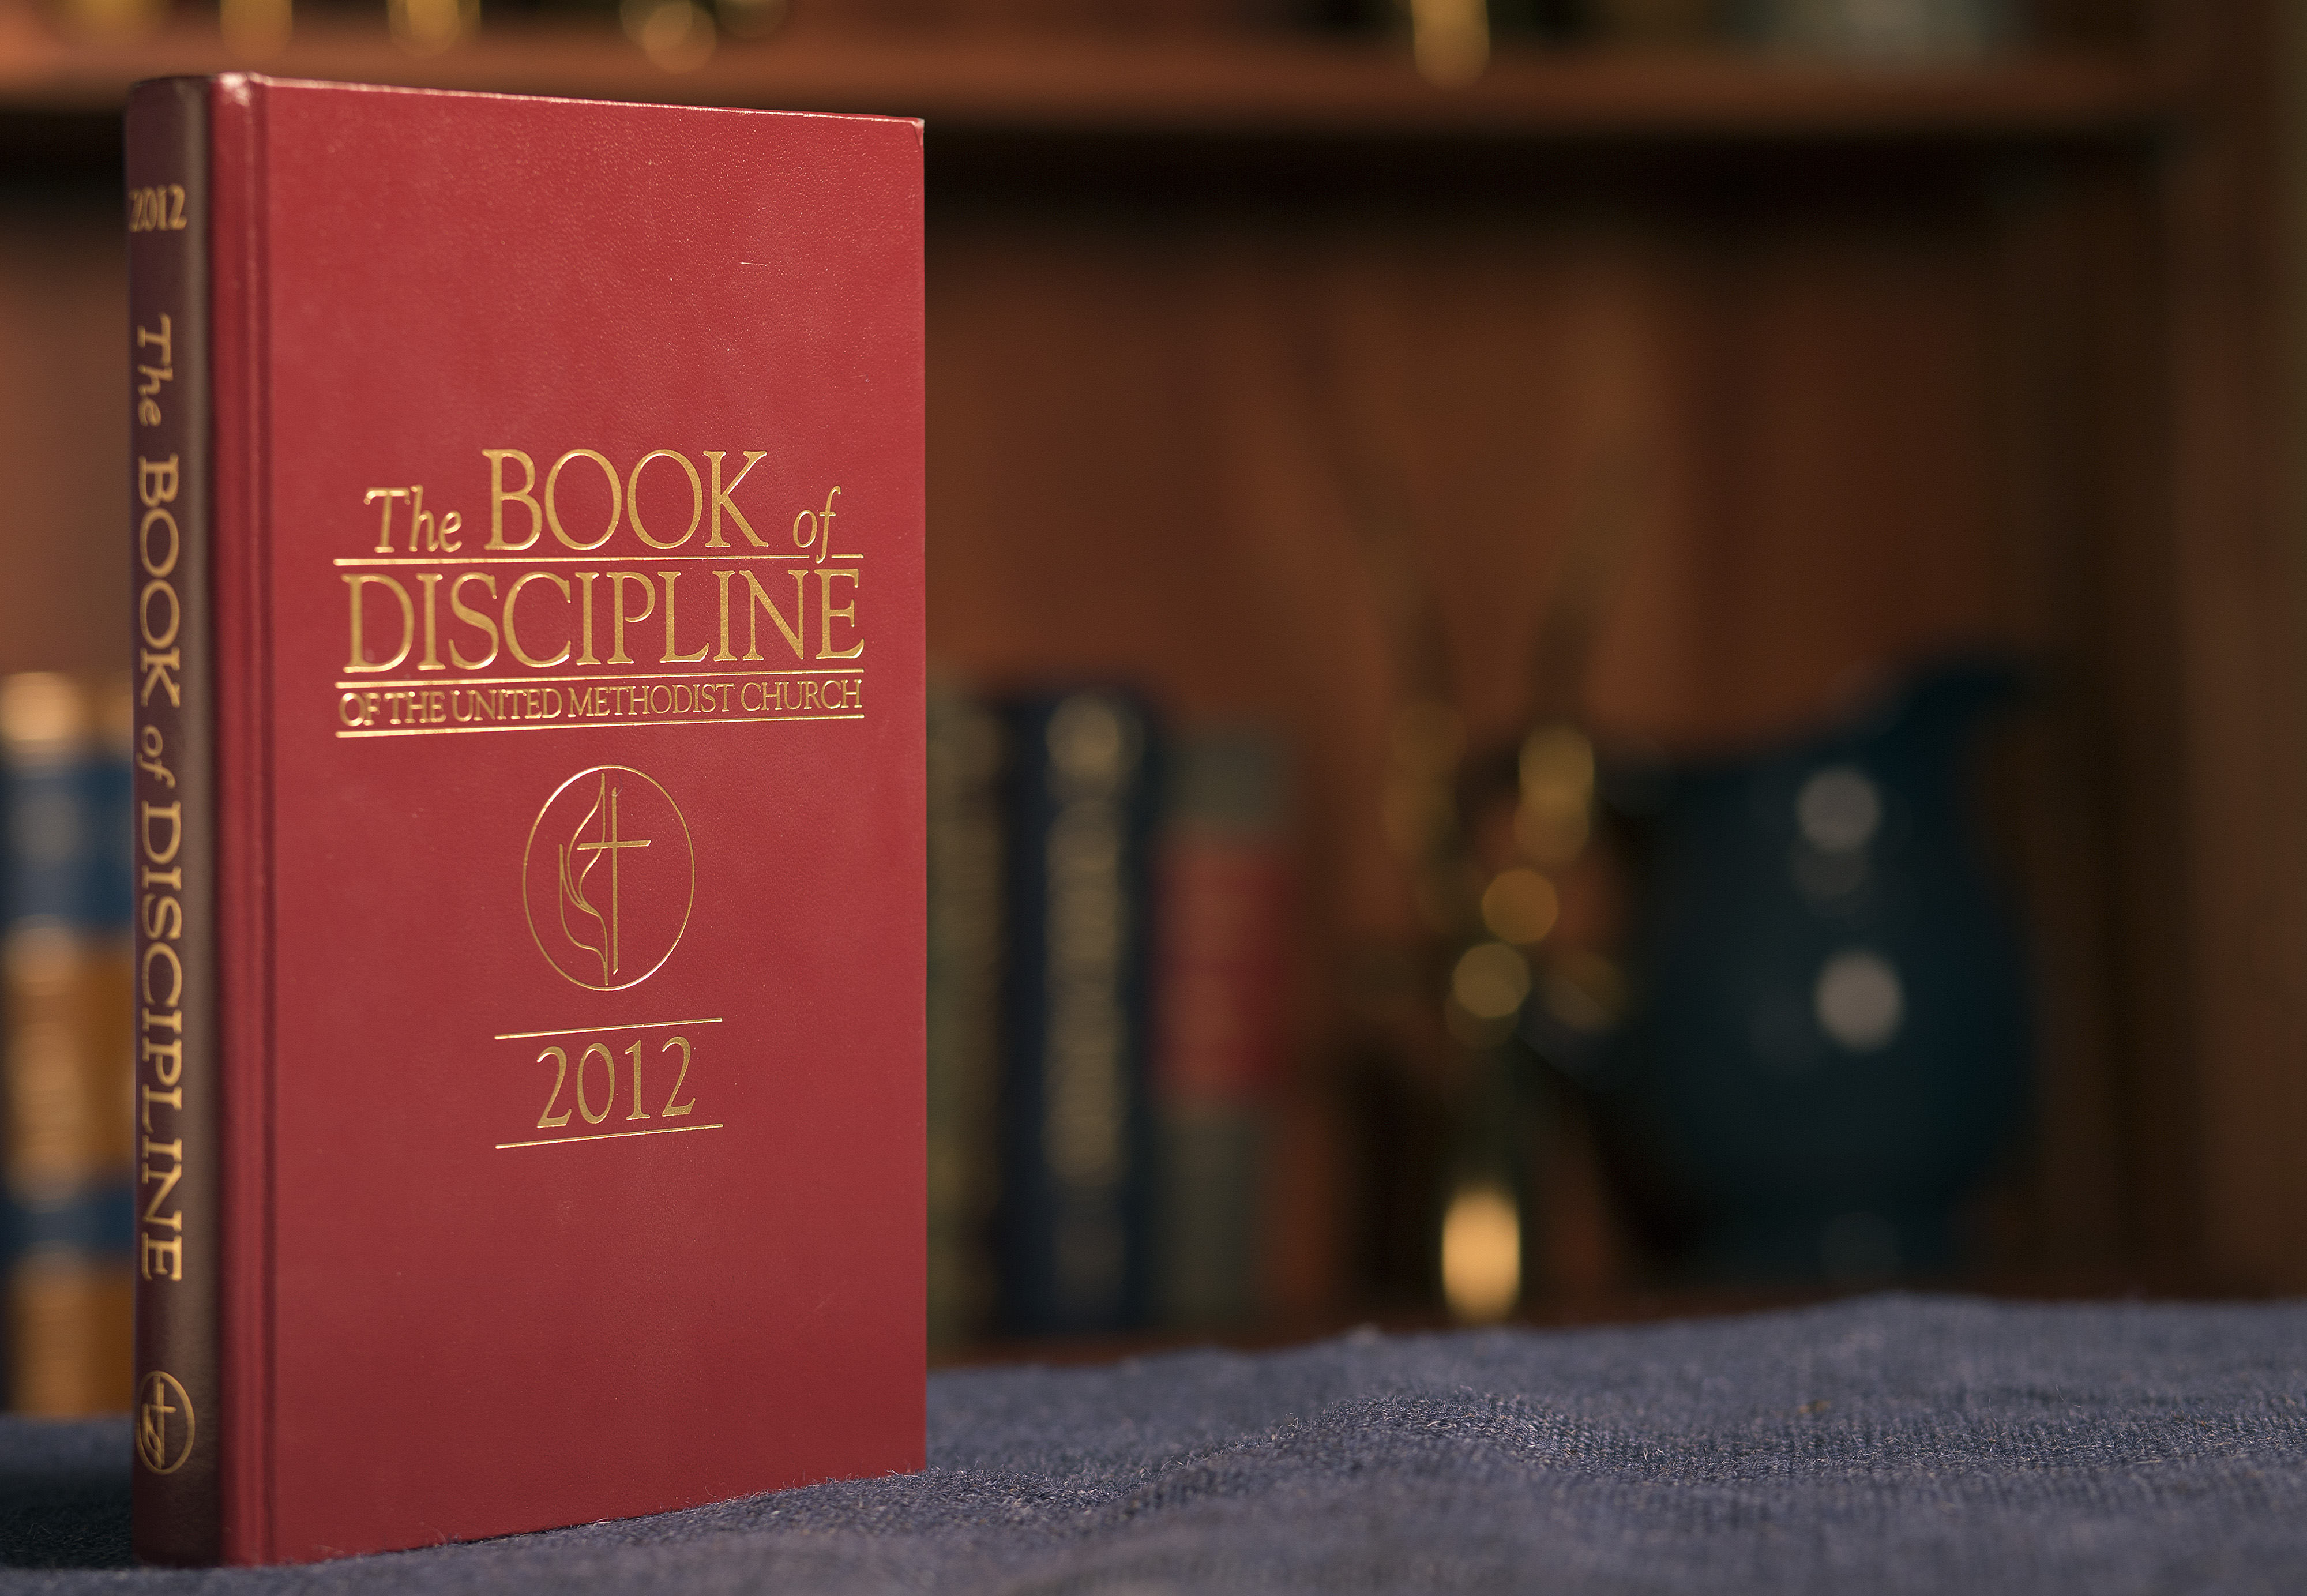 The 2012 edition of The Book of Discipline of The United Methodist Church. Photo by Mike DuBose, UMNS